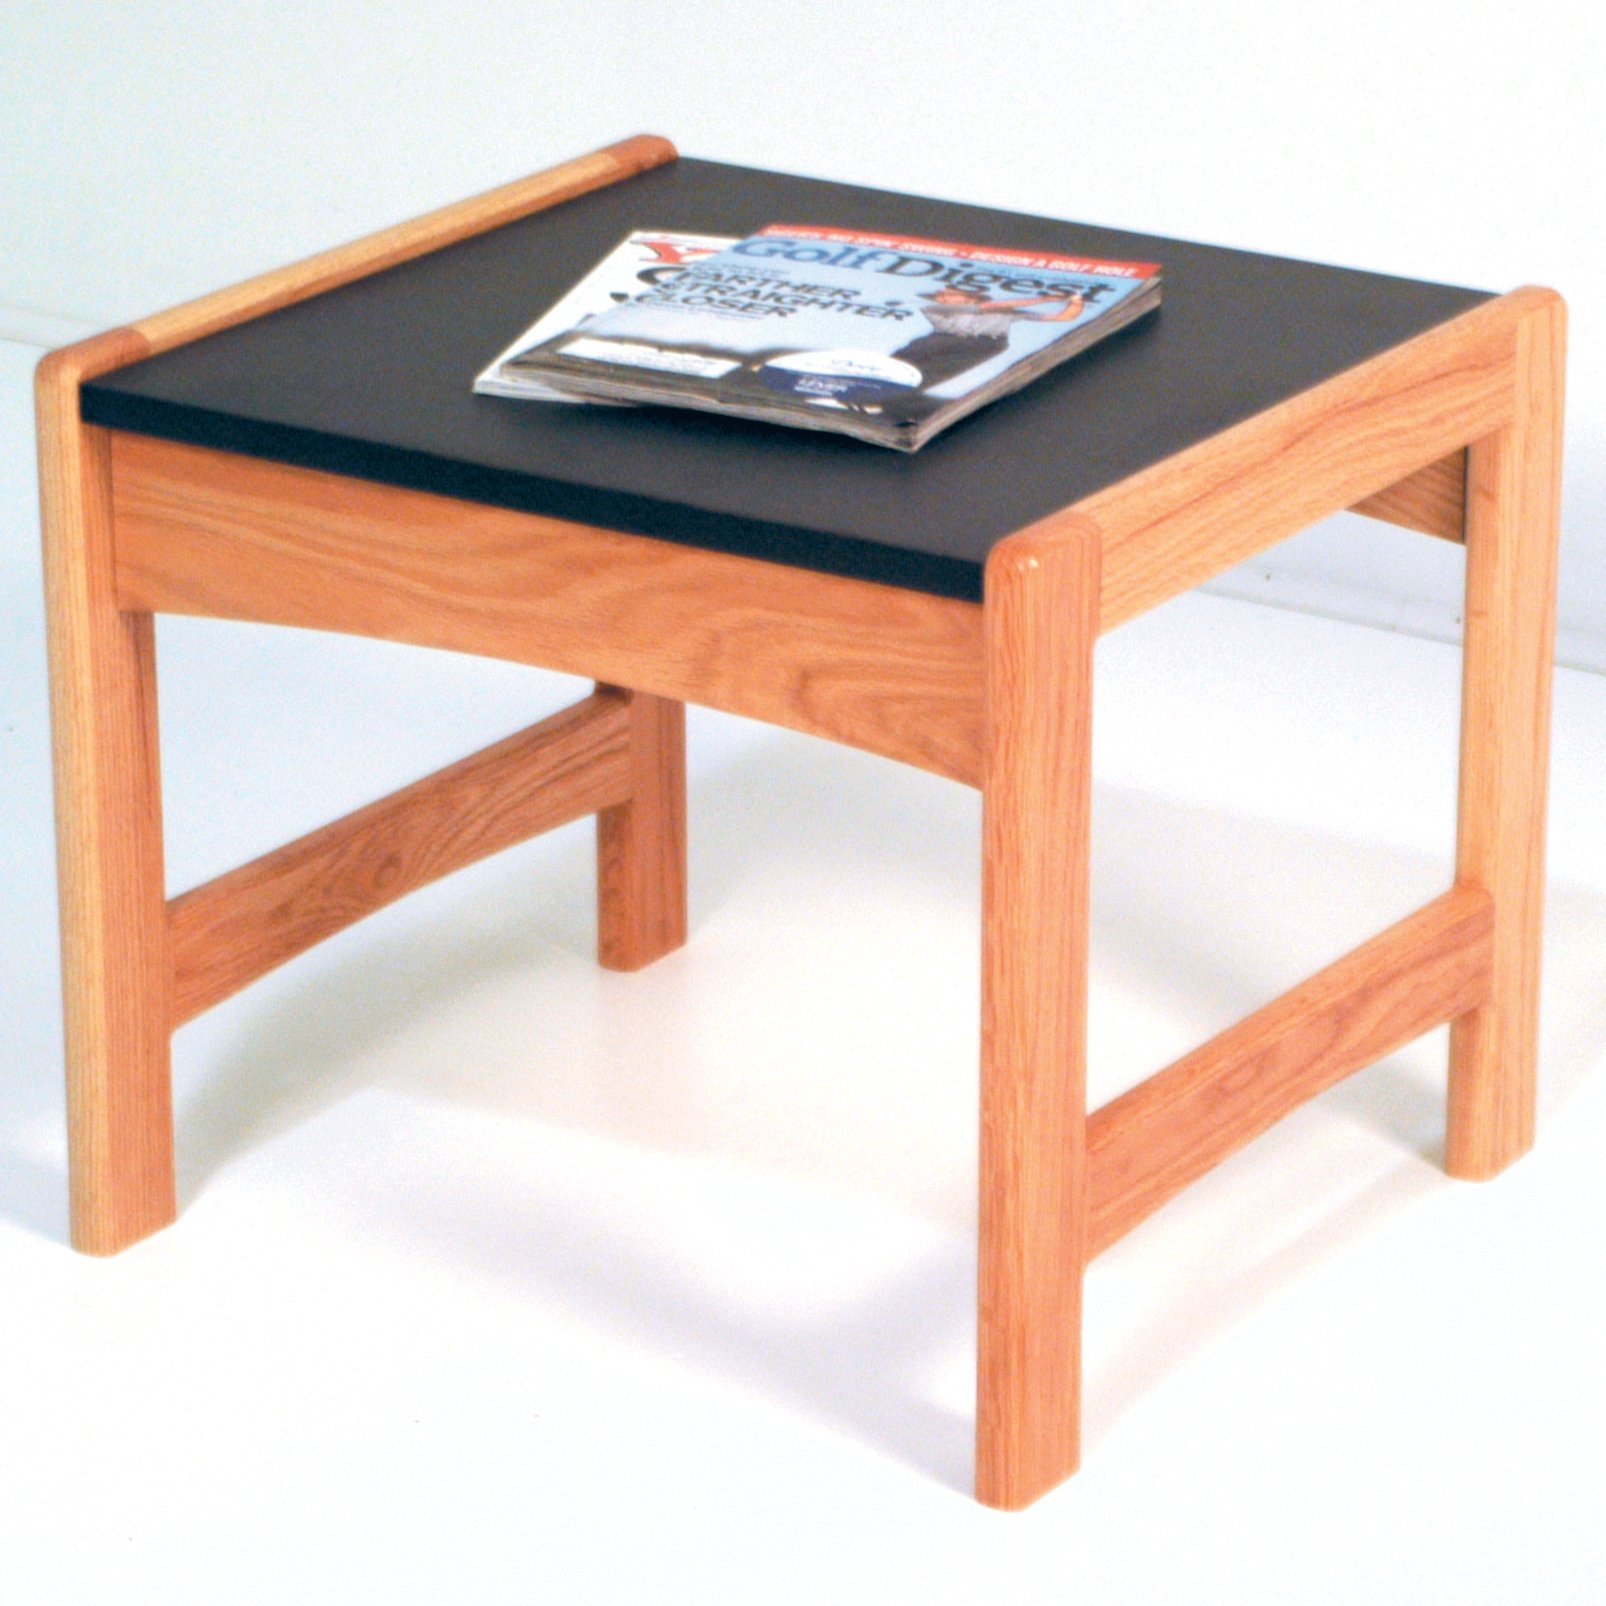 Wooden Mallet End Table with Black Granite Look Top, Light Oak by Wooden Mallet